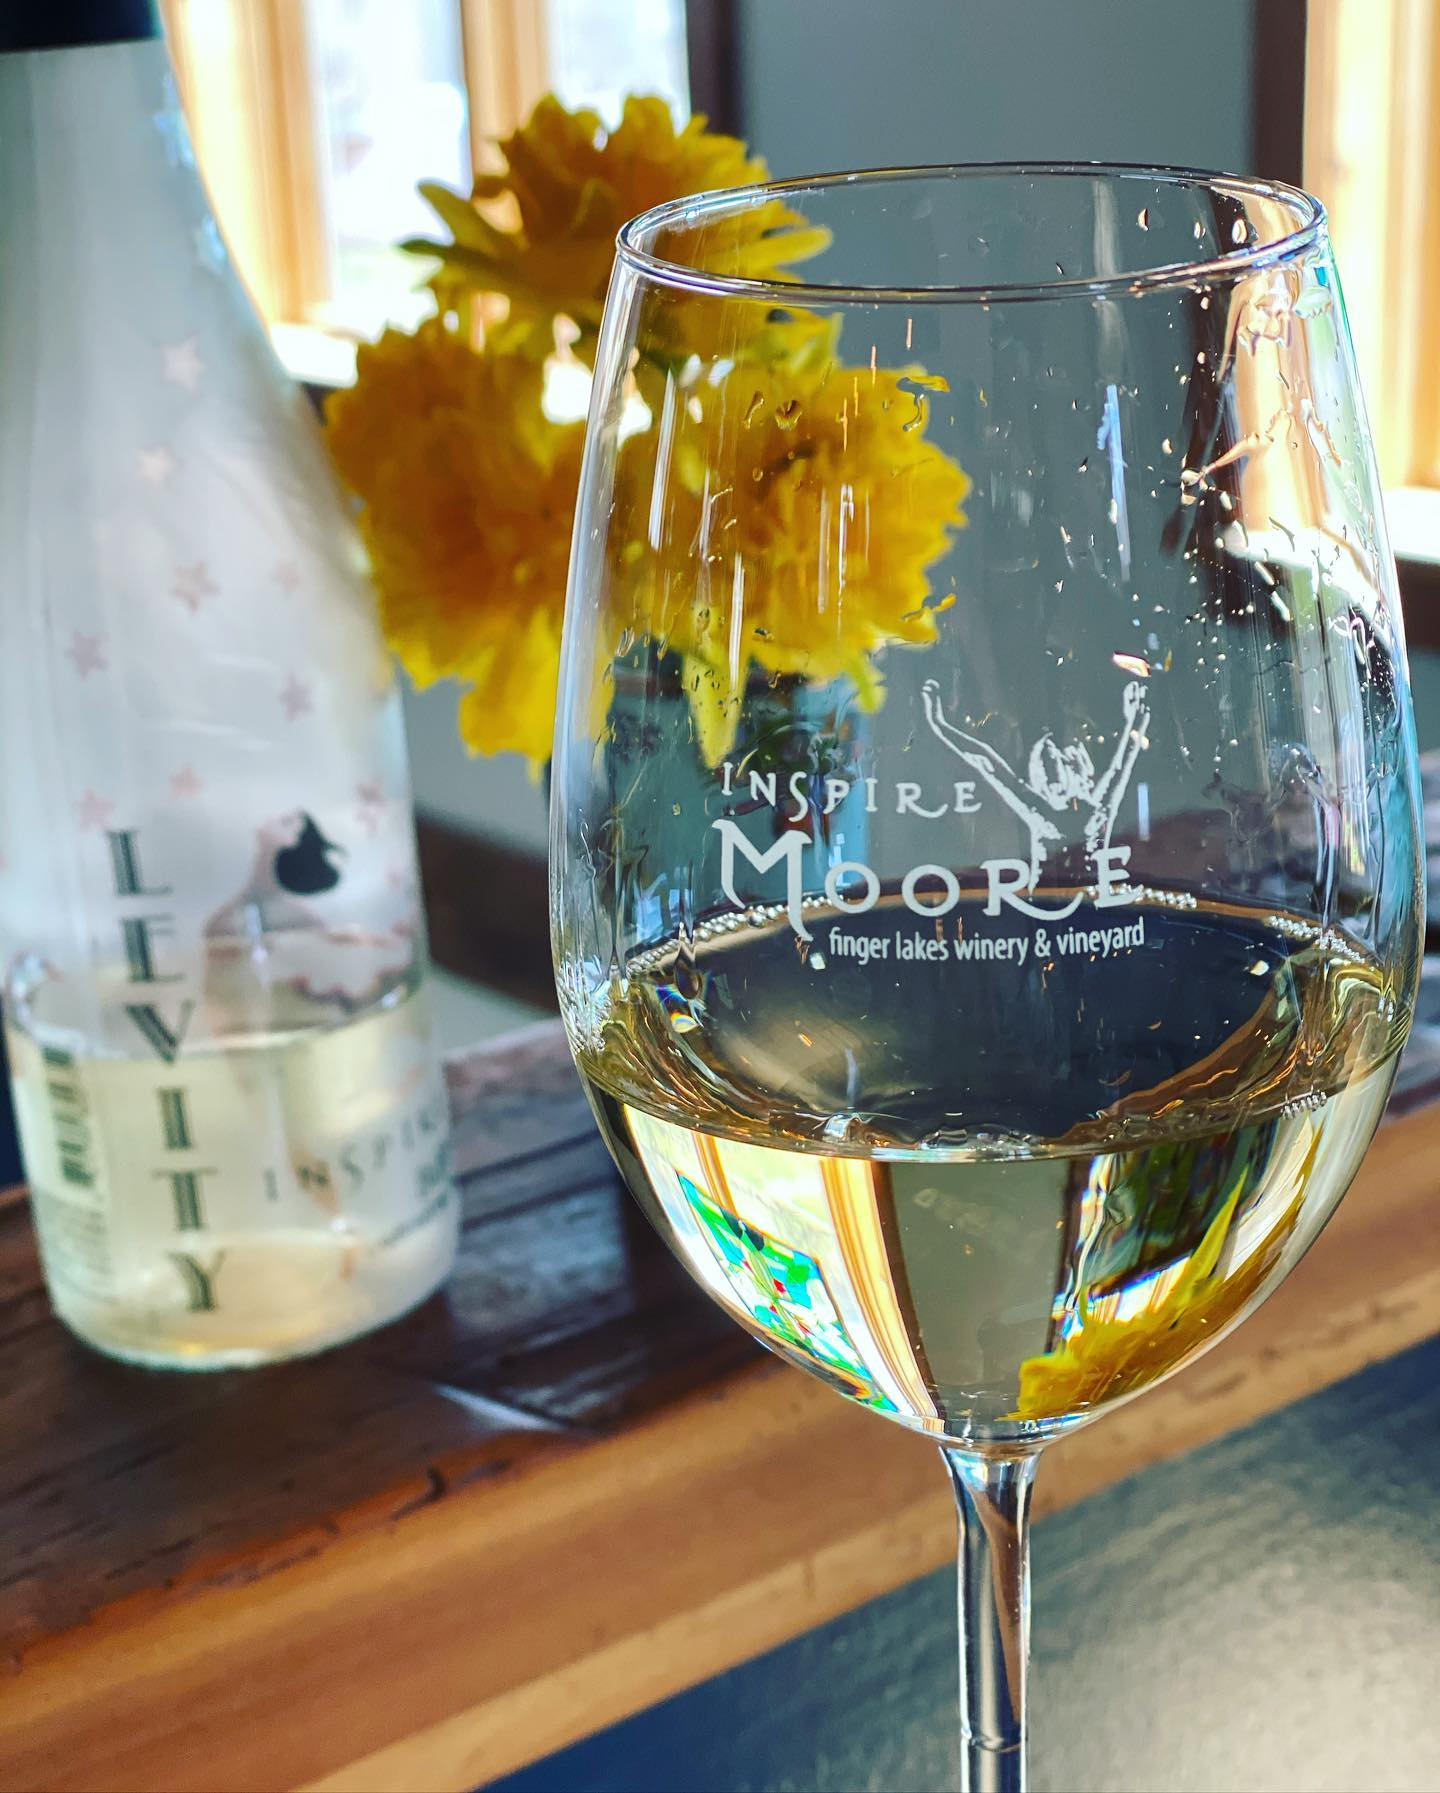 Wine Glass Inspire Moore